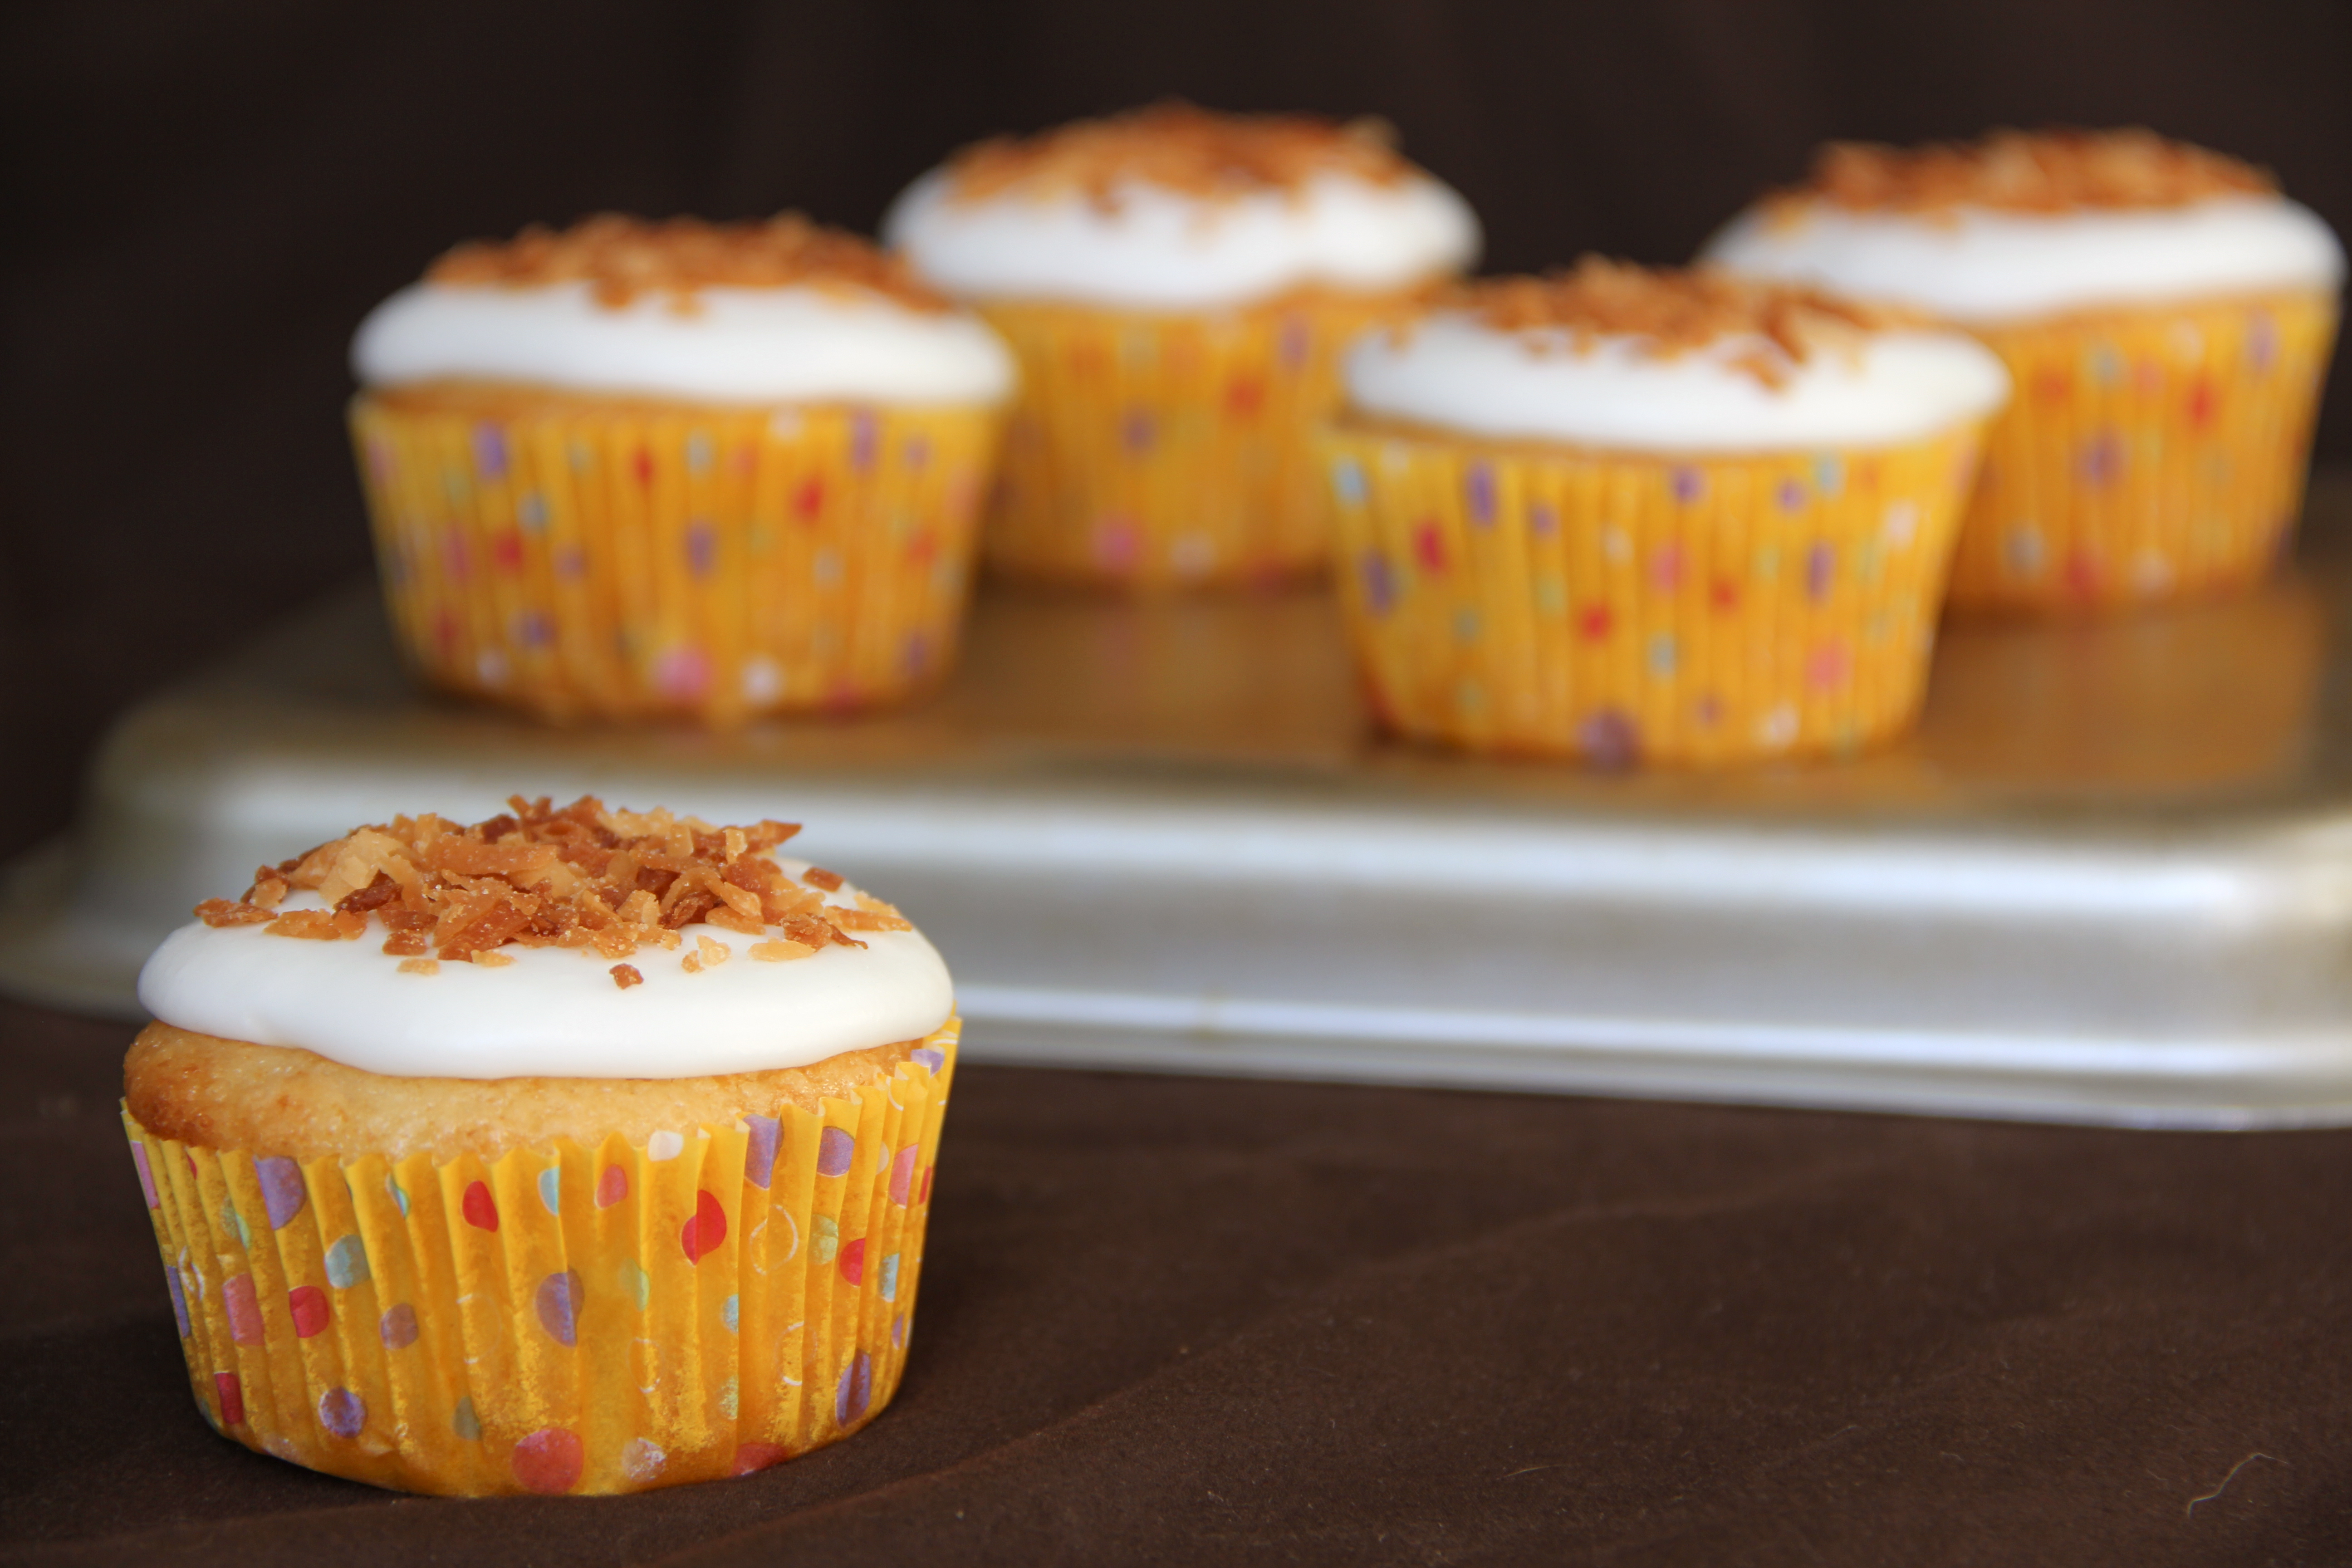 lemon cupcakes with coconut frosting and chocolate filling